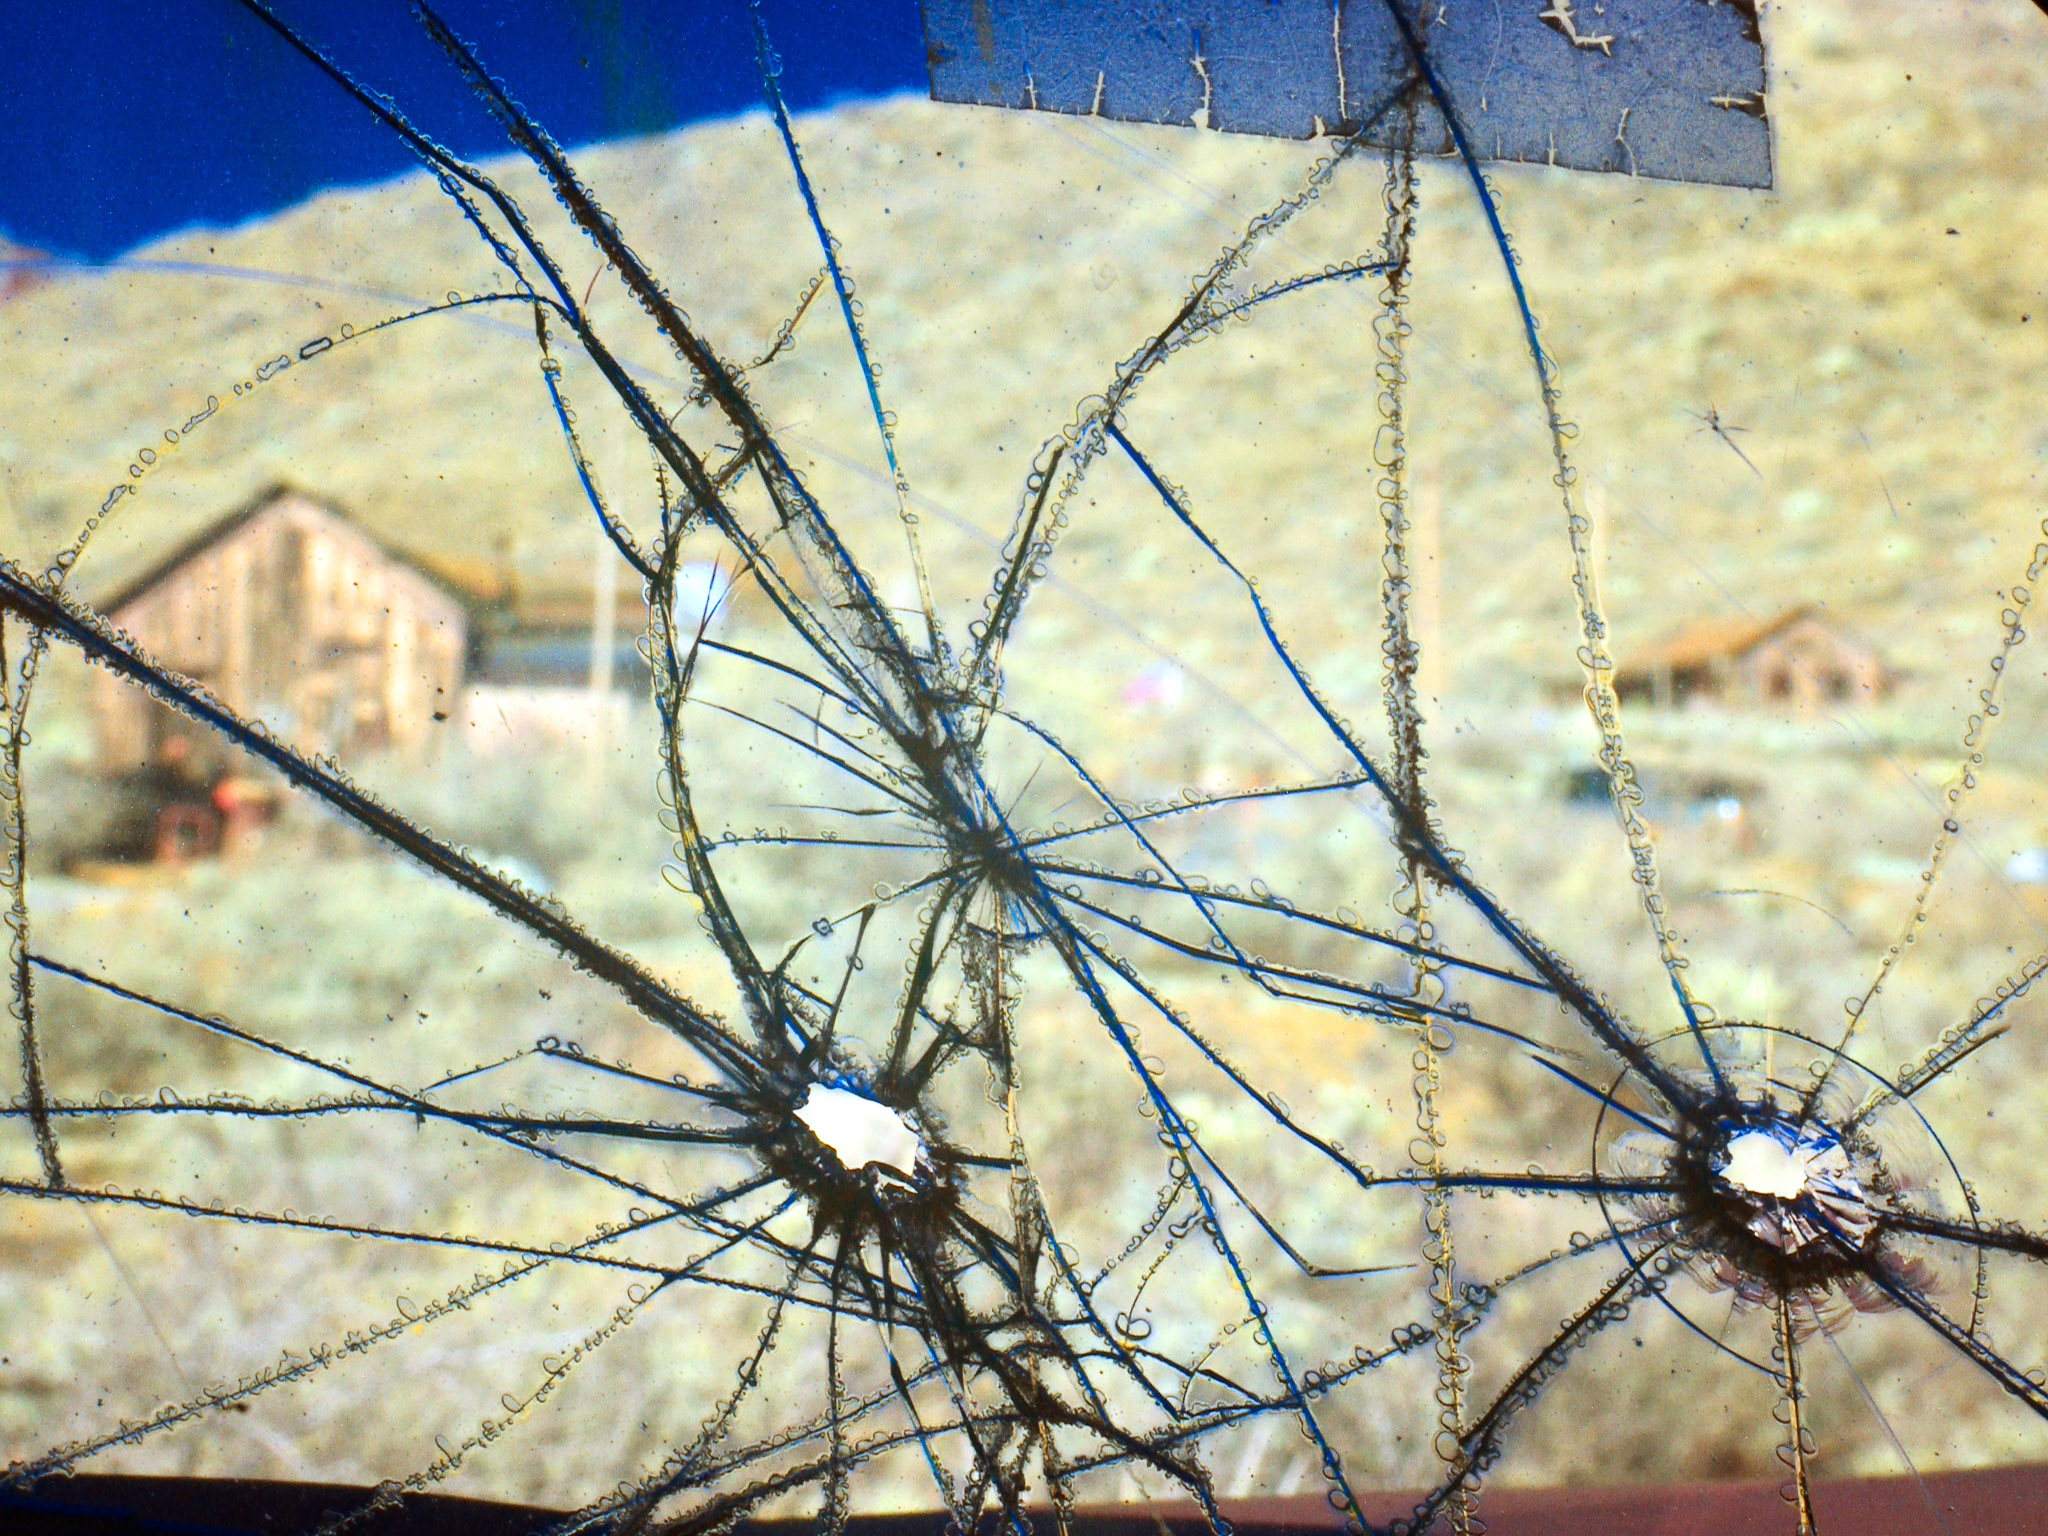 Windshield with Bullet Holes, New Mexico